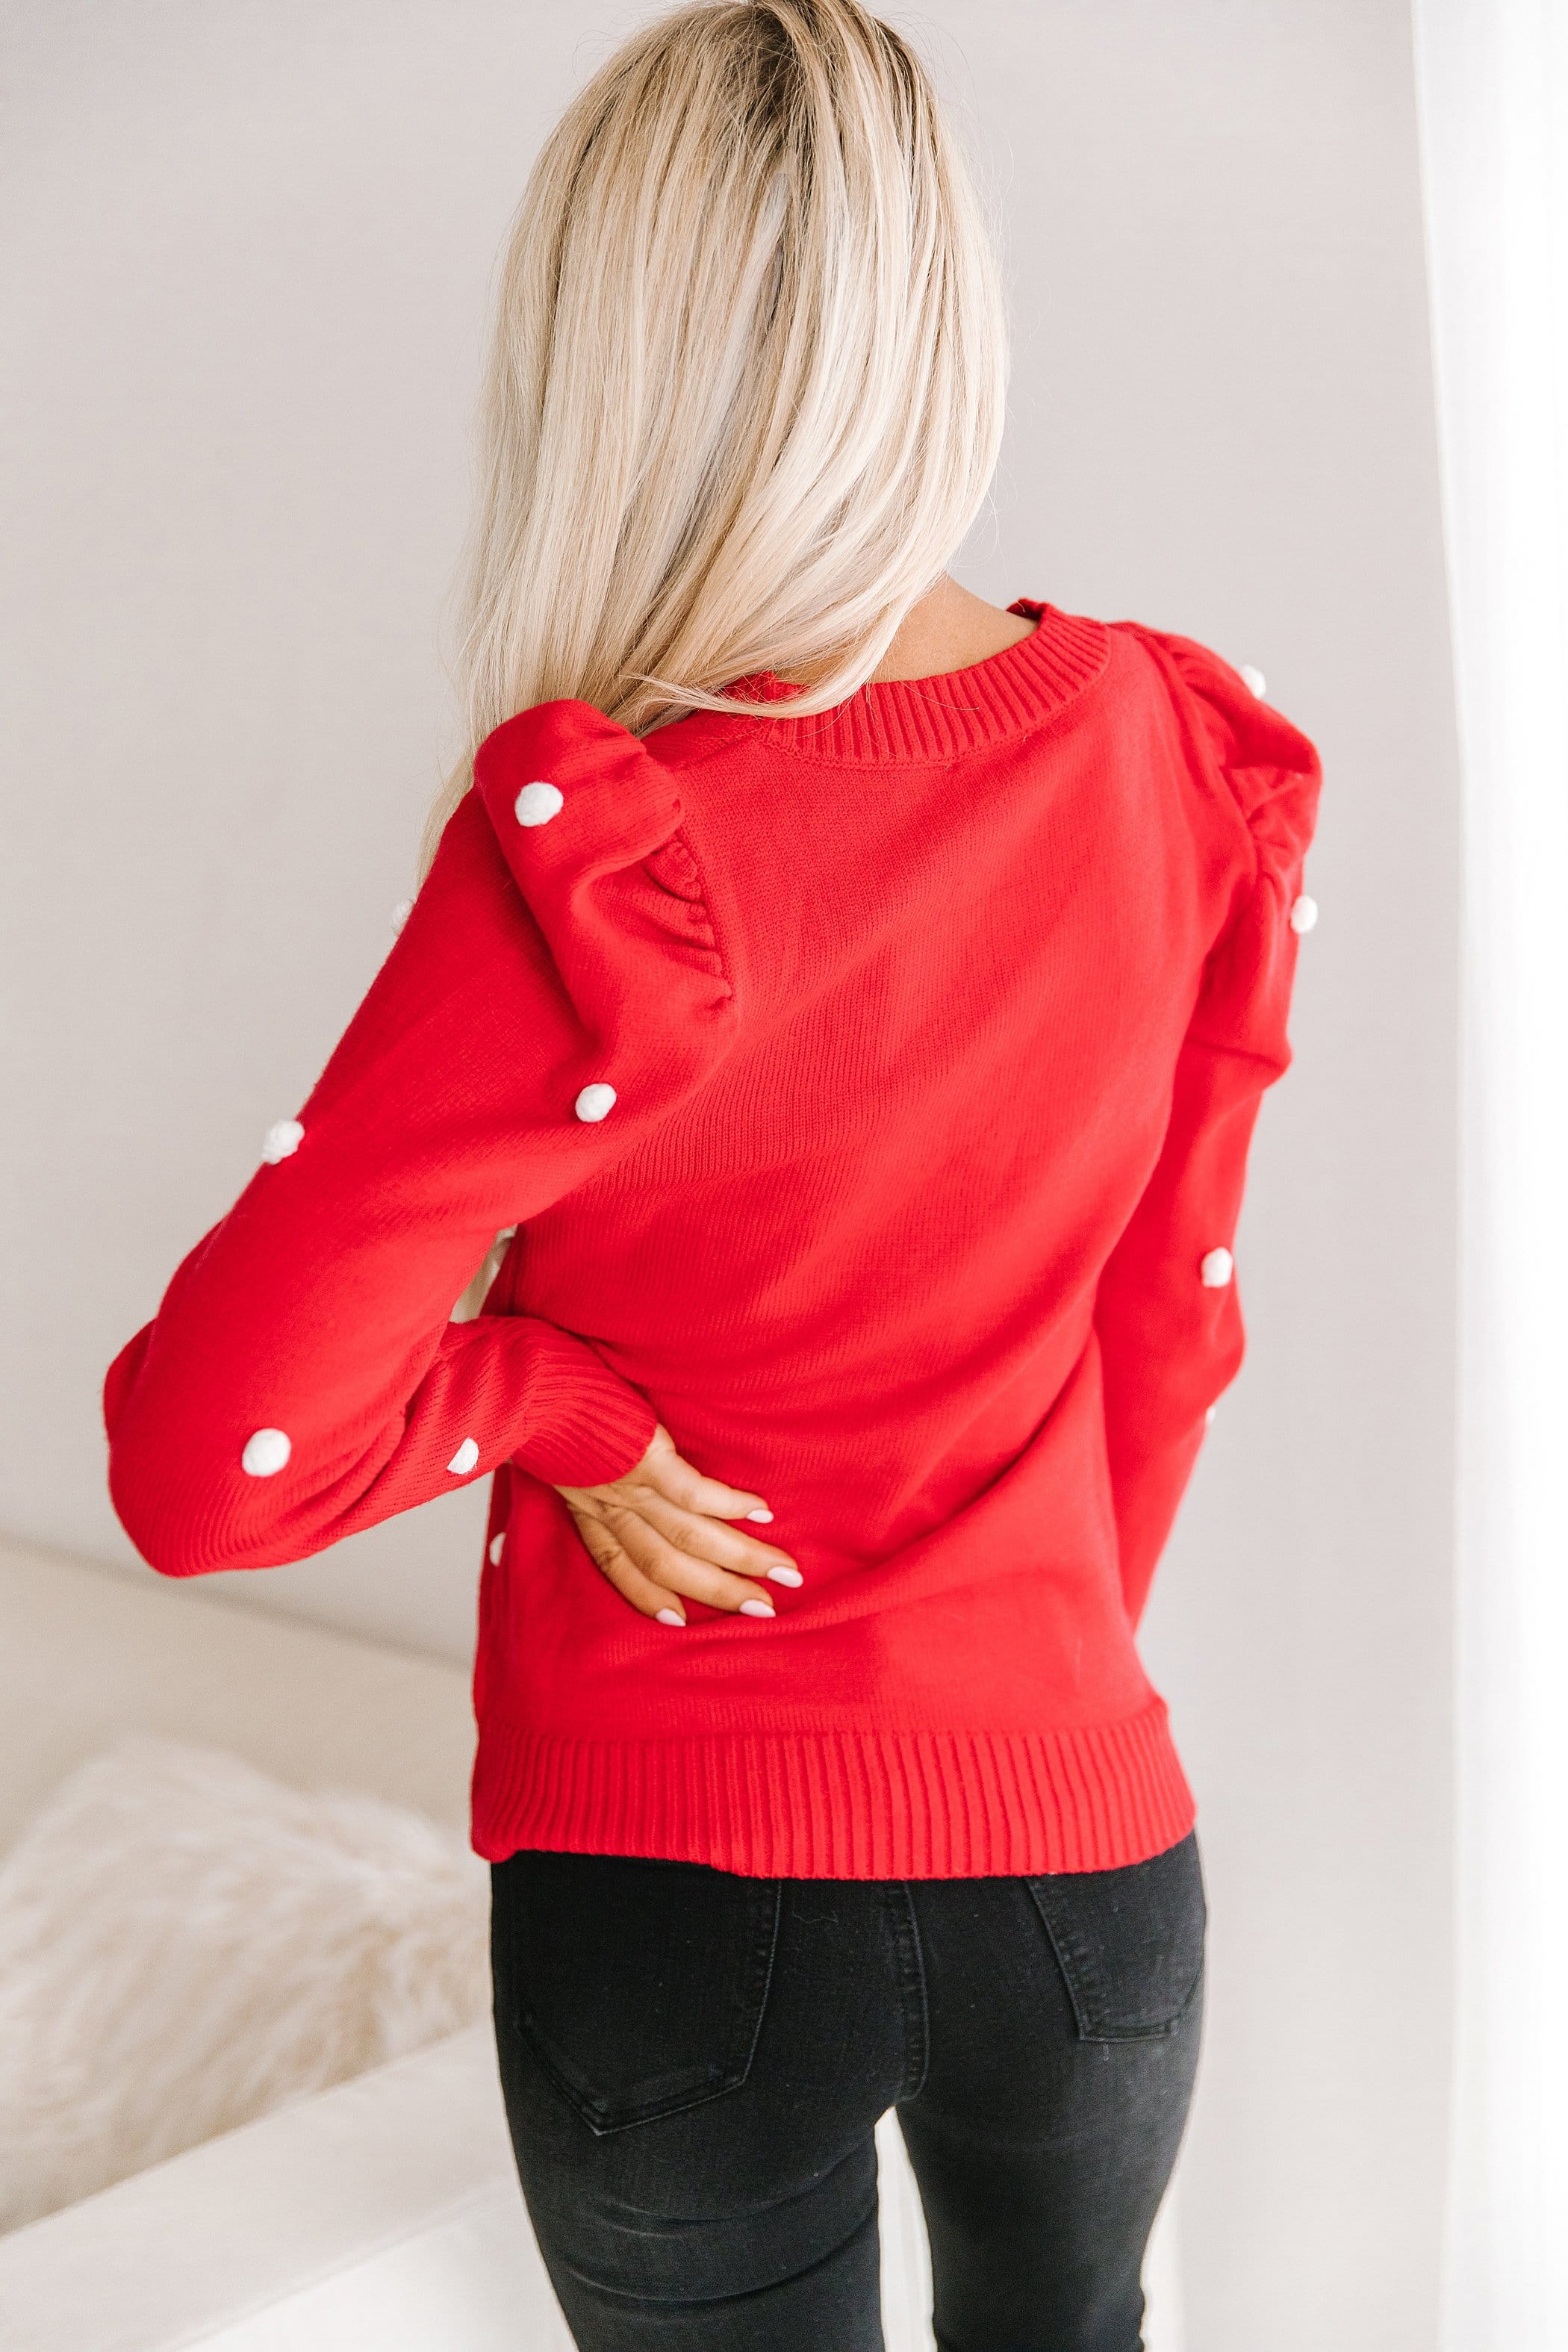 The Adore Pom Pom Sweater in Red and White